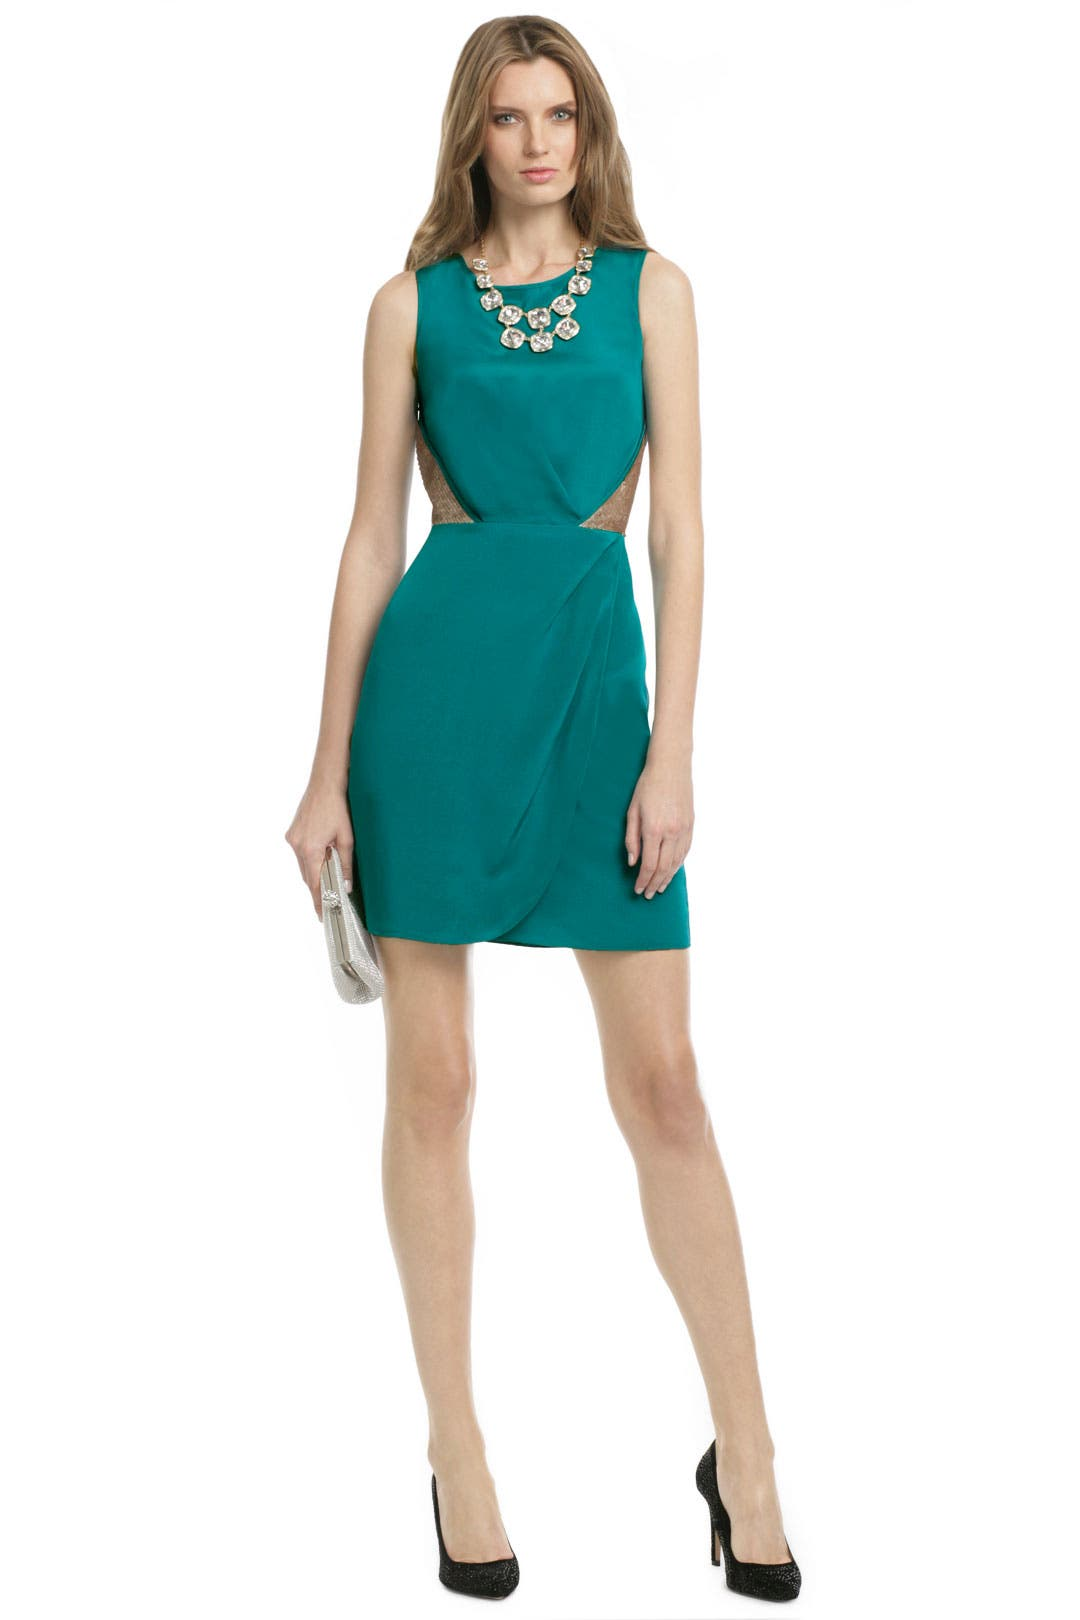 Teal Glow Sheath by Sachin + Babi